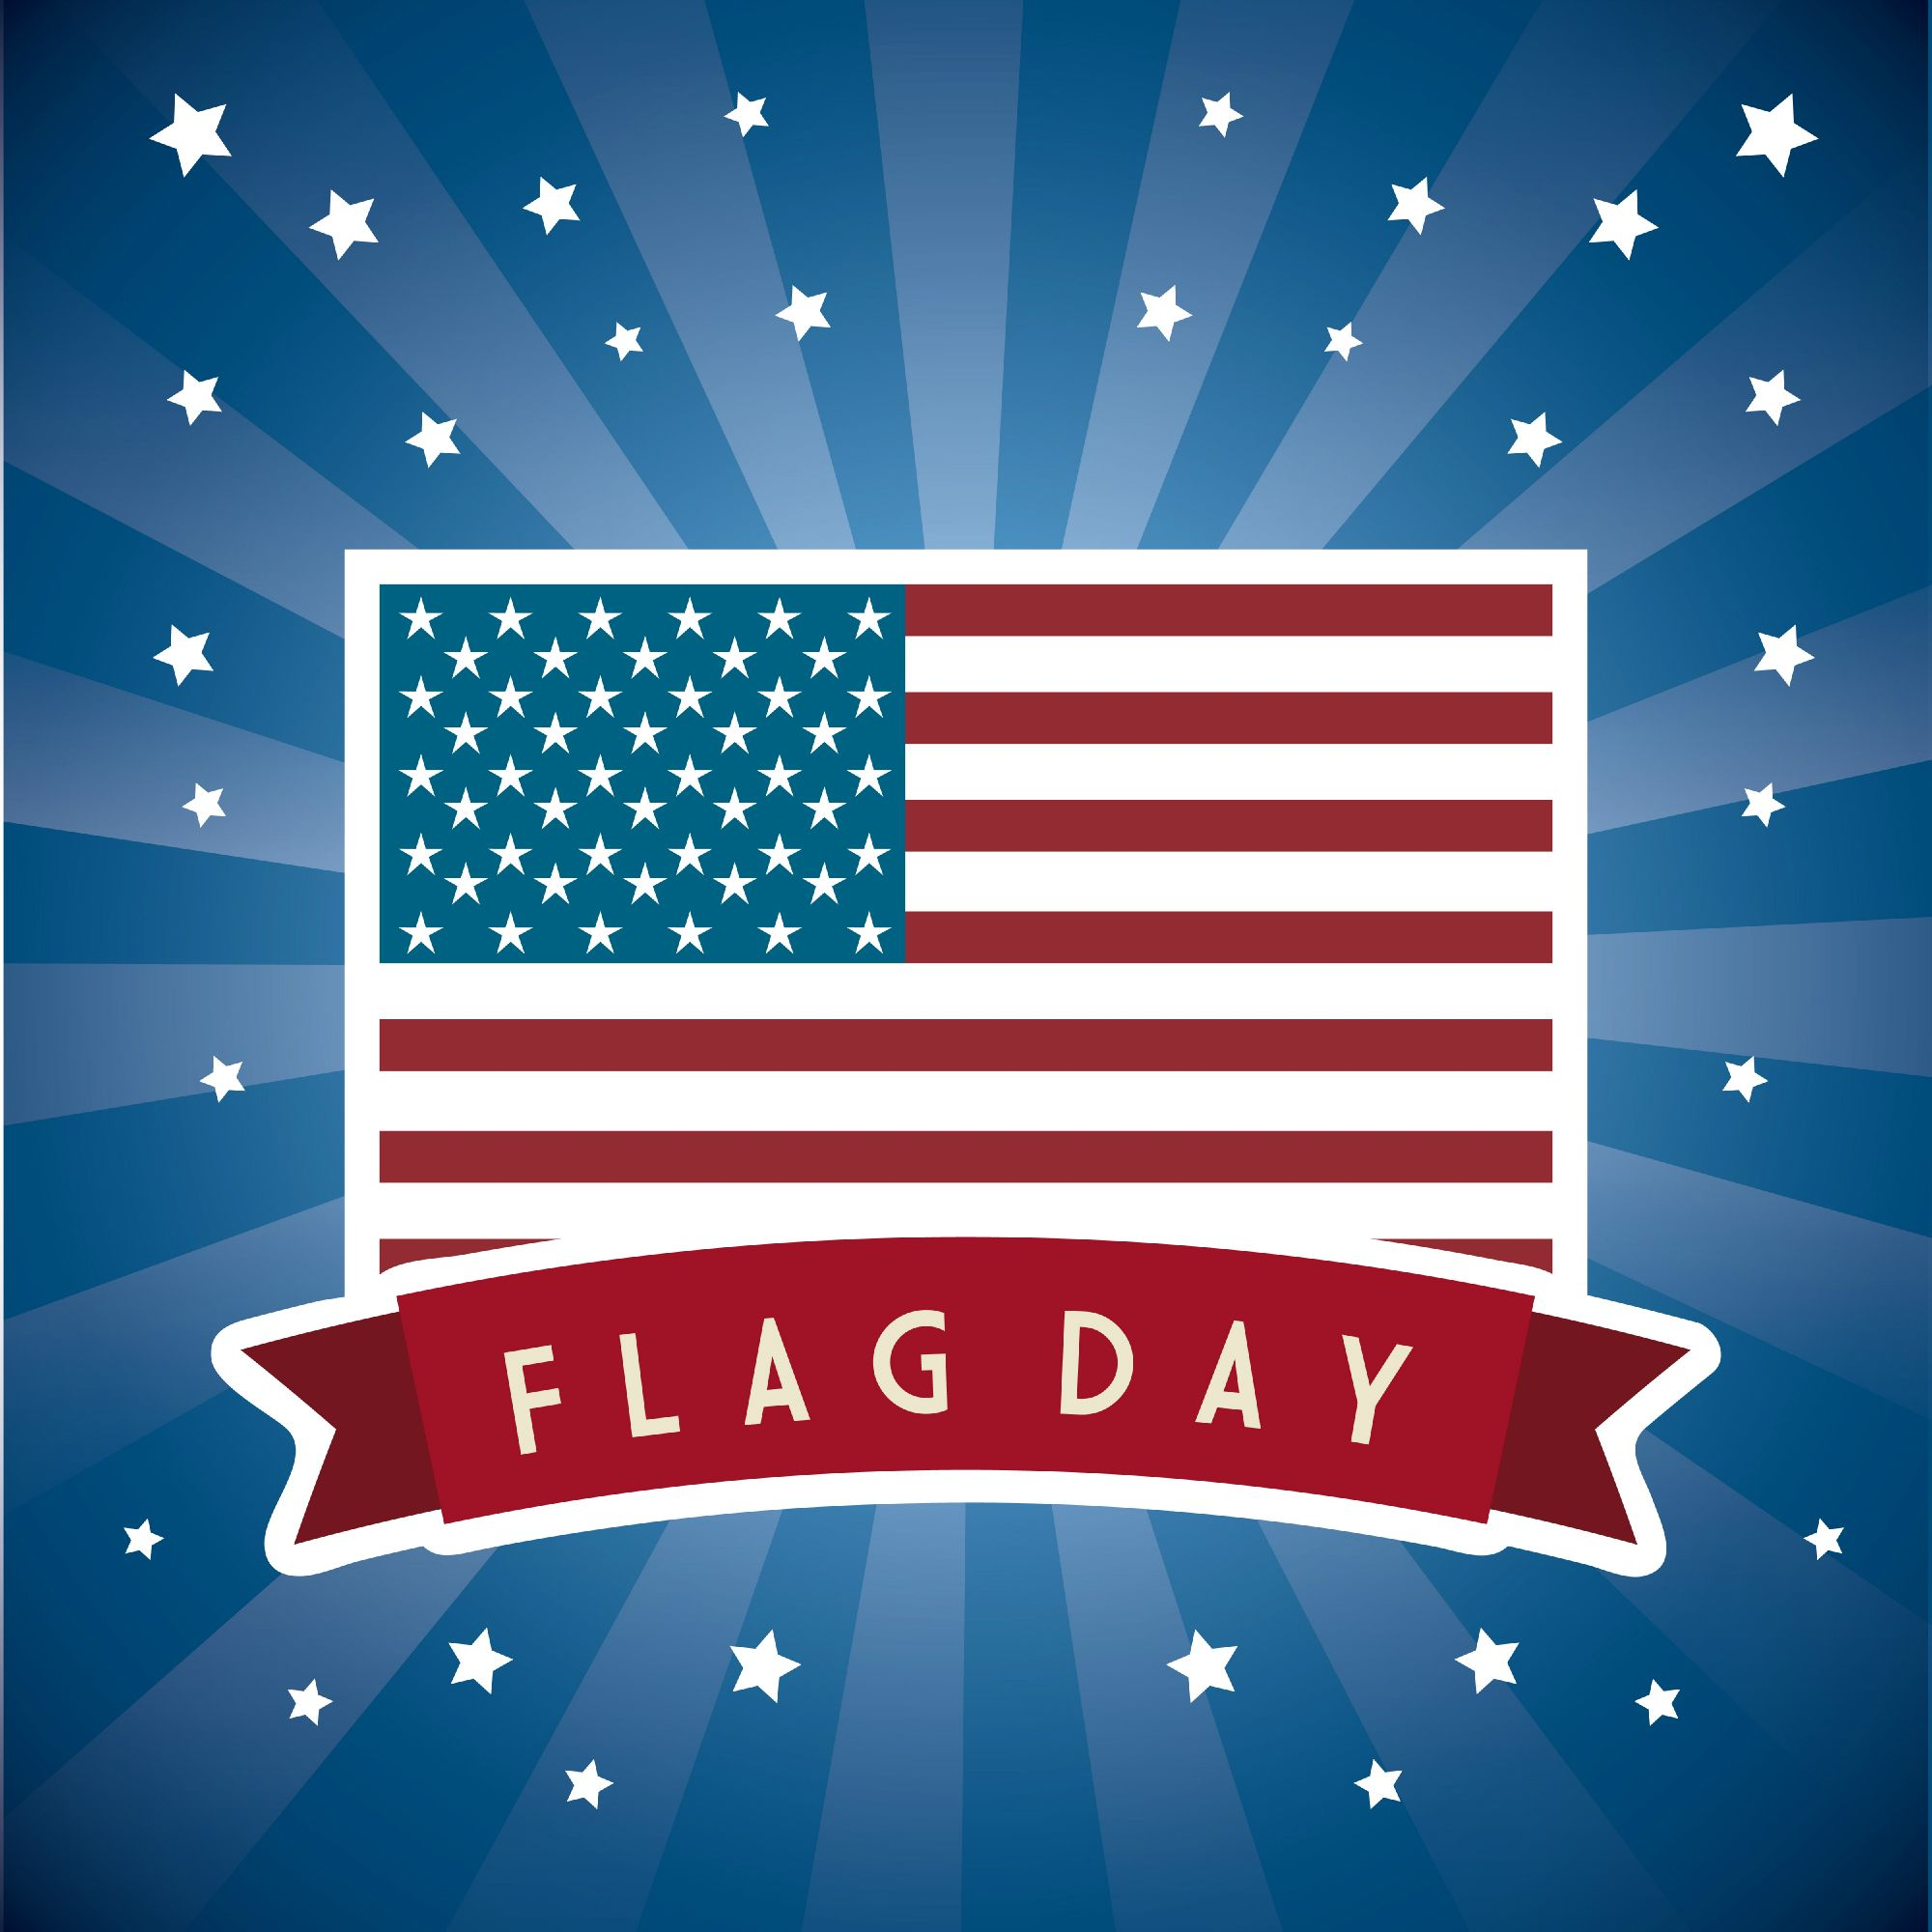 Happy Flag Day Did You Know That The 50 Stars On The American Flag Represent Each Of The 50 States In The U S And The 13 Stripes Flag Us Flags American Flag